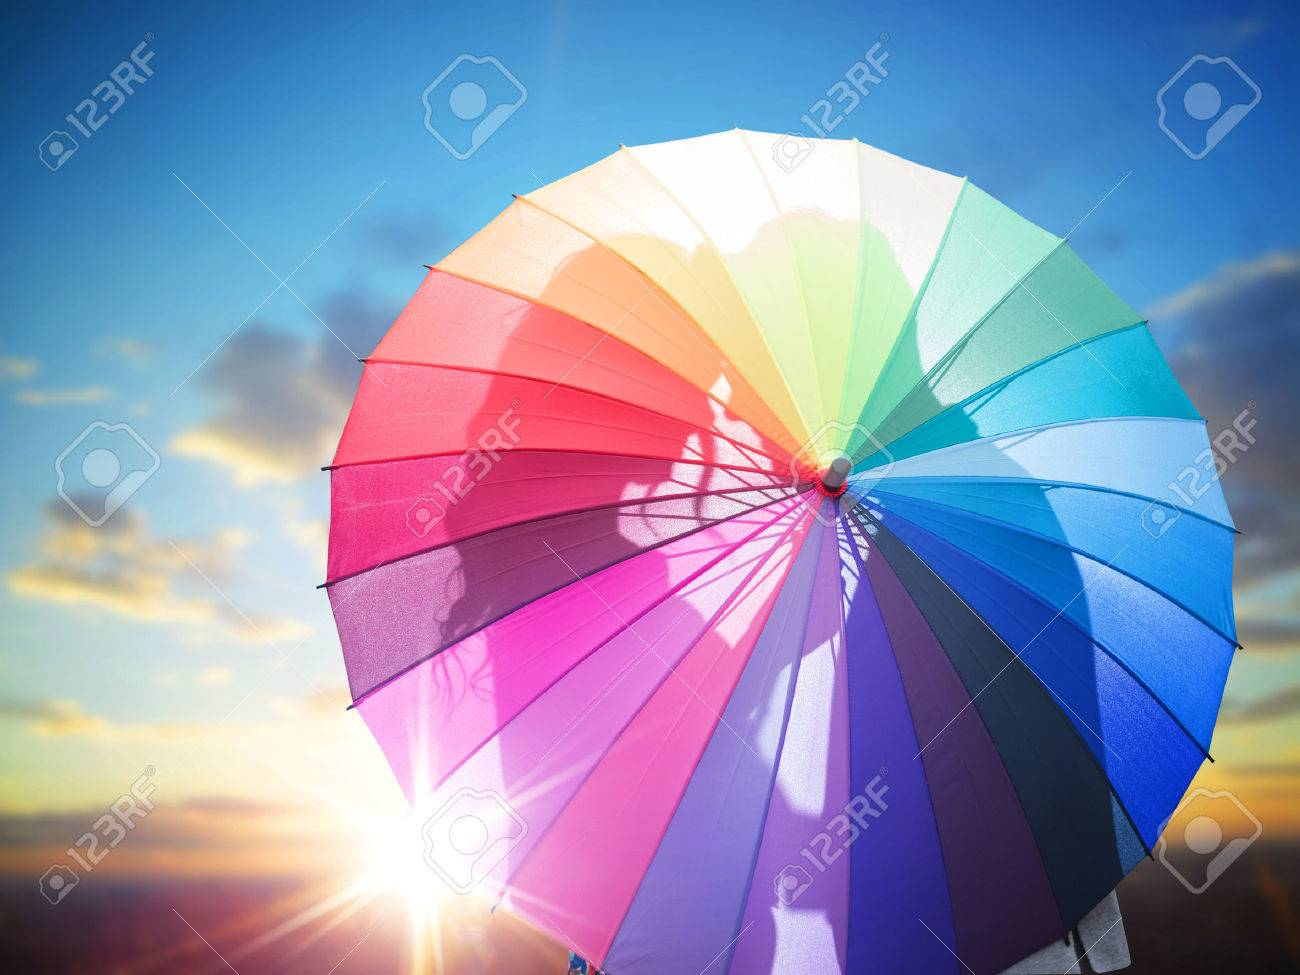 Romantic Couple Behind The Colorful Umbrella Stock Photo, Picture ... for Colorful Umbrella Photography  183qdu